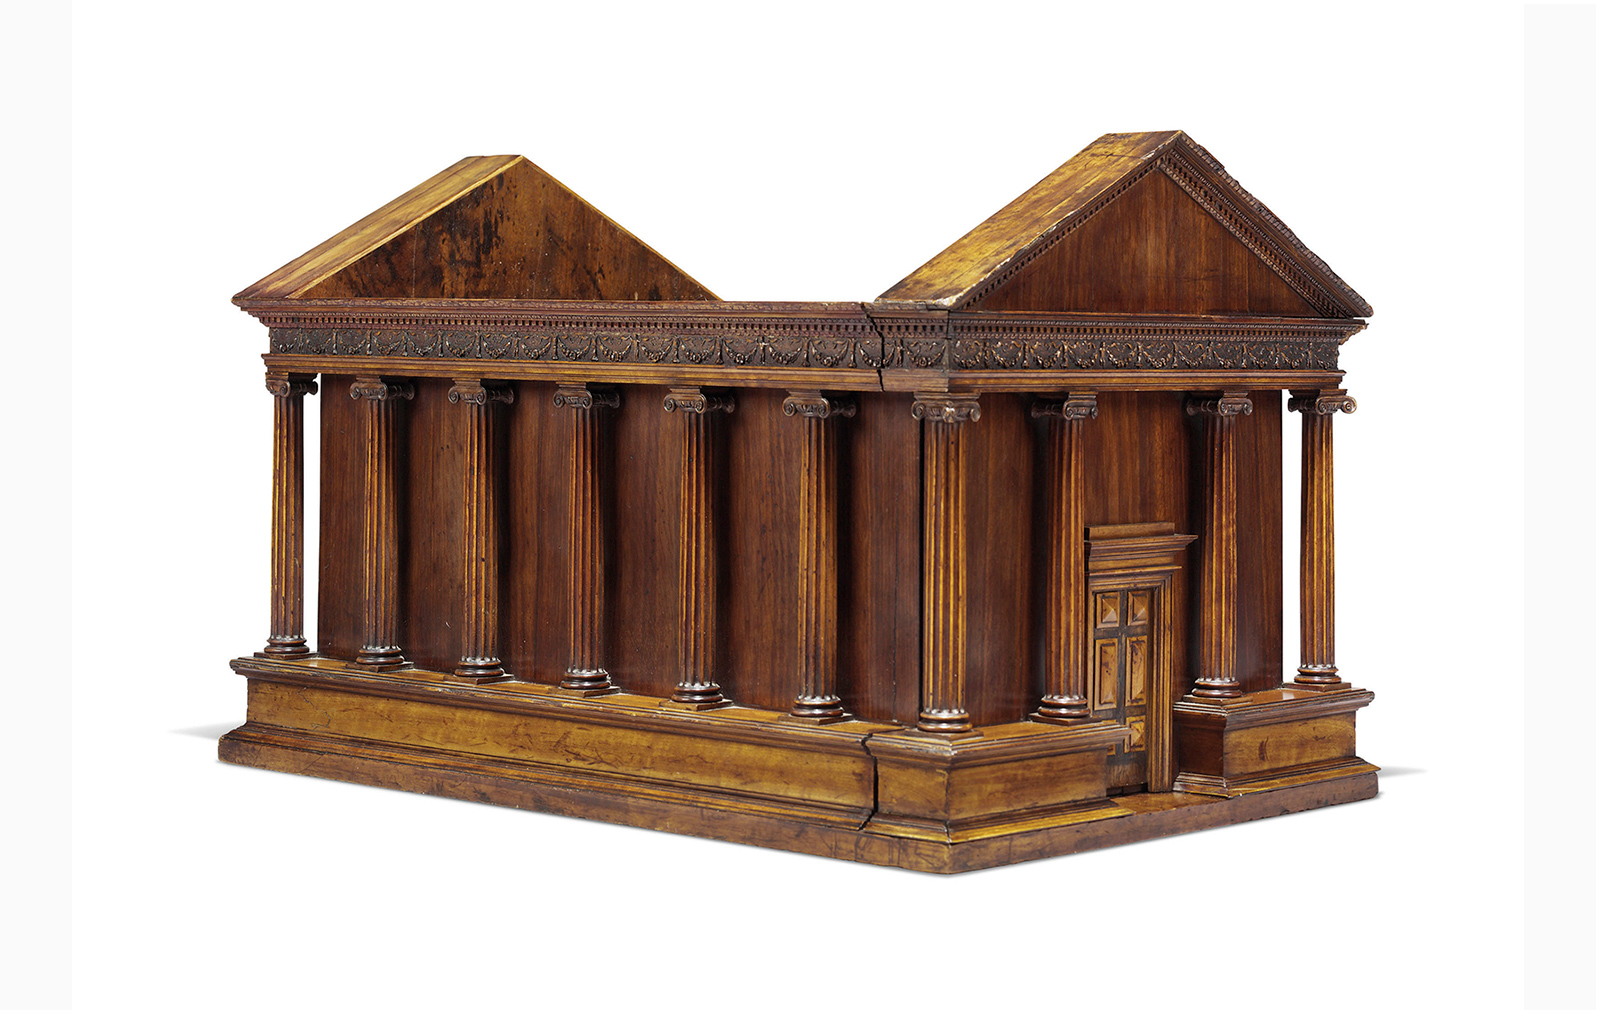 An Italian fruitwood architectural model of the Temple of Portunus, circa late 18th/early 19th century. Acquired from Axel Vervoordt NV, Gravenwezel, Belgium, 1998. (Estimate: £50,000 - £80,000).